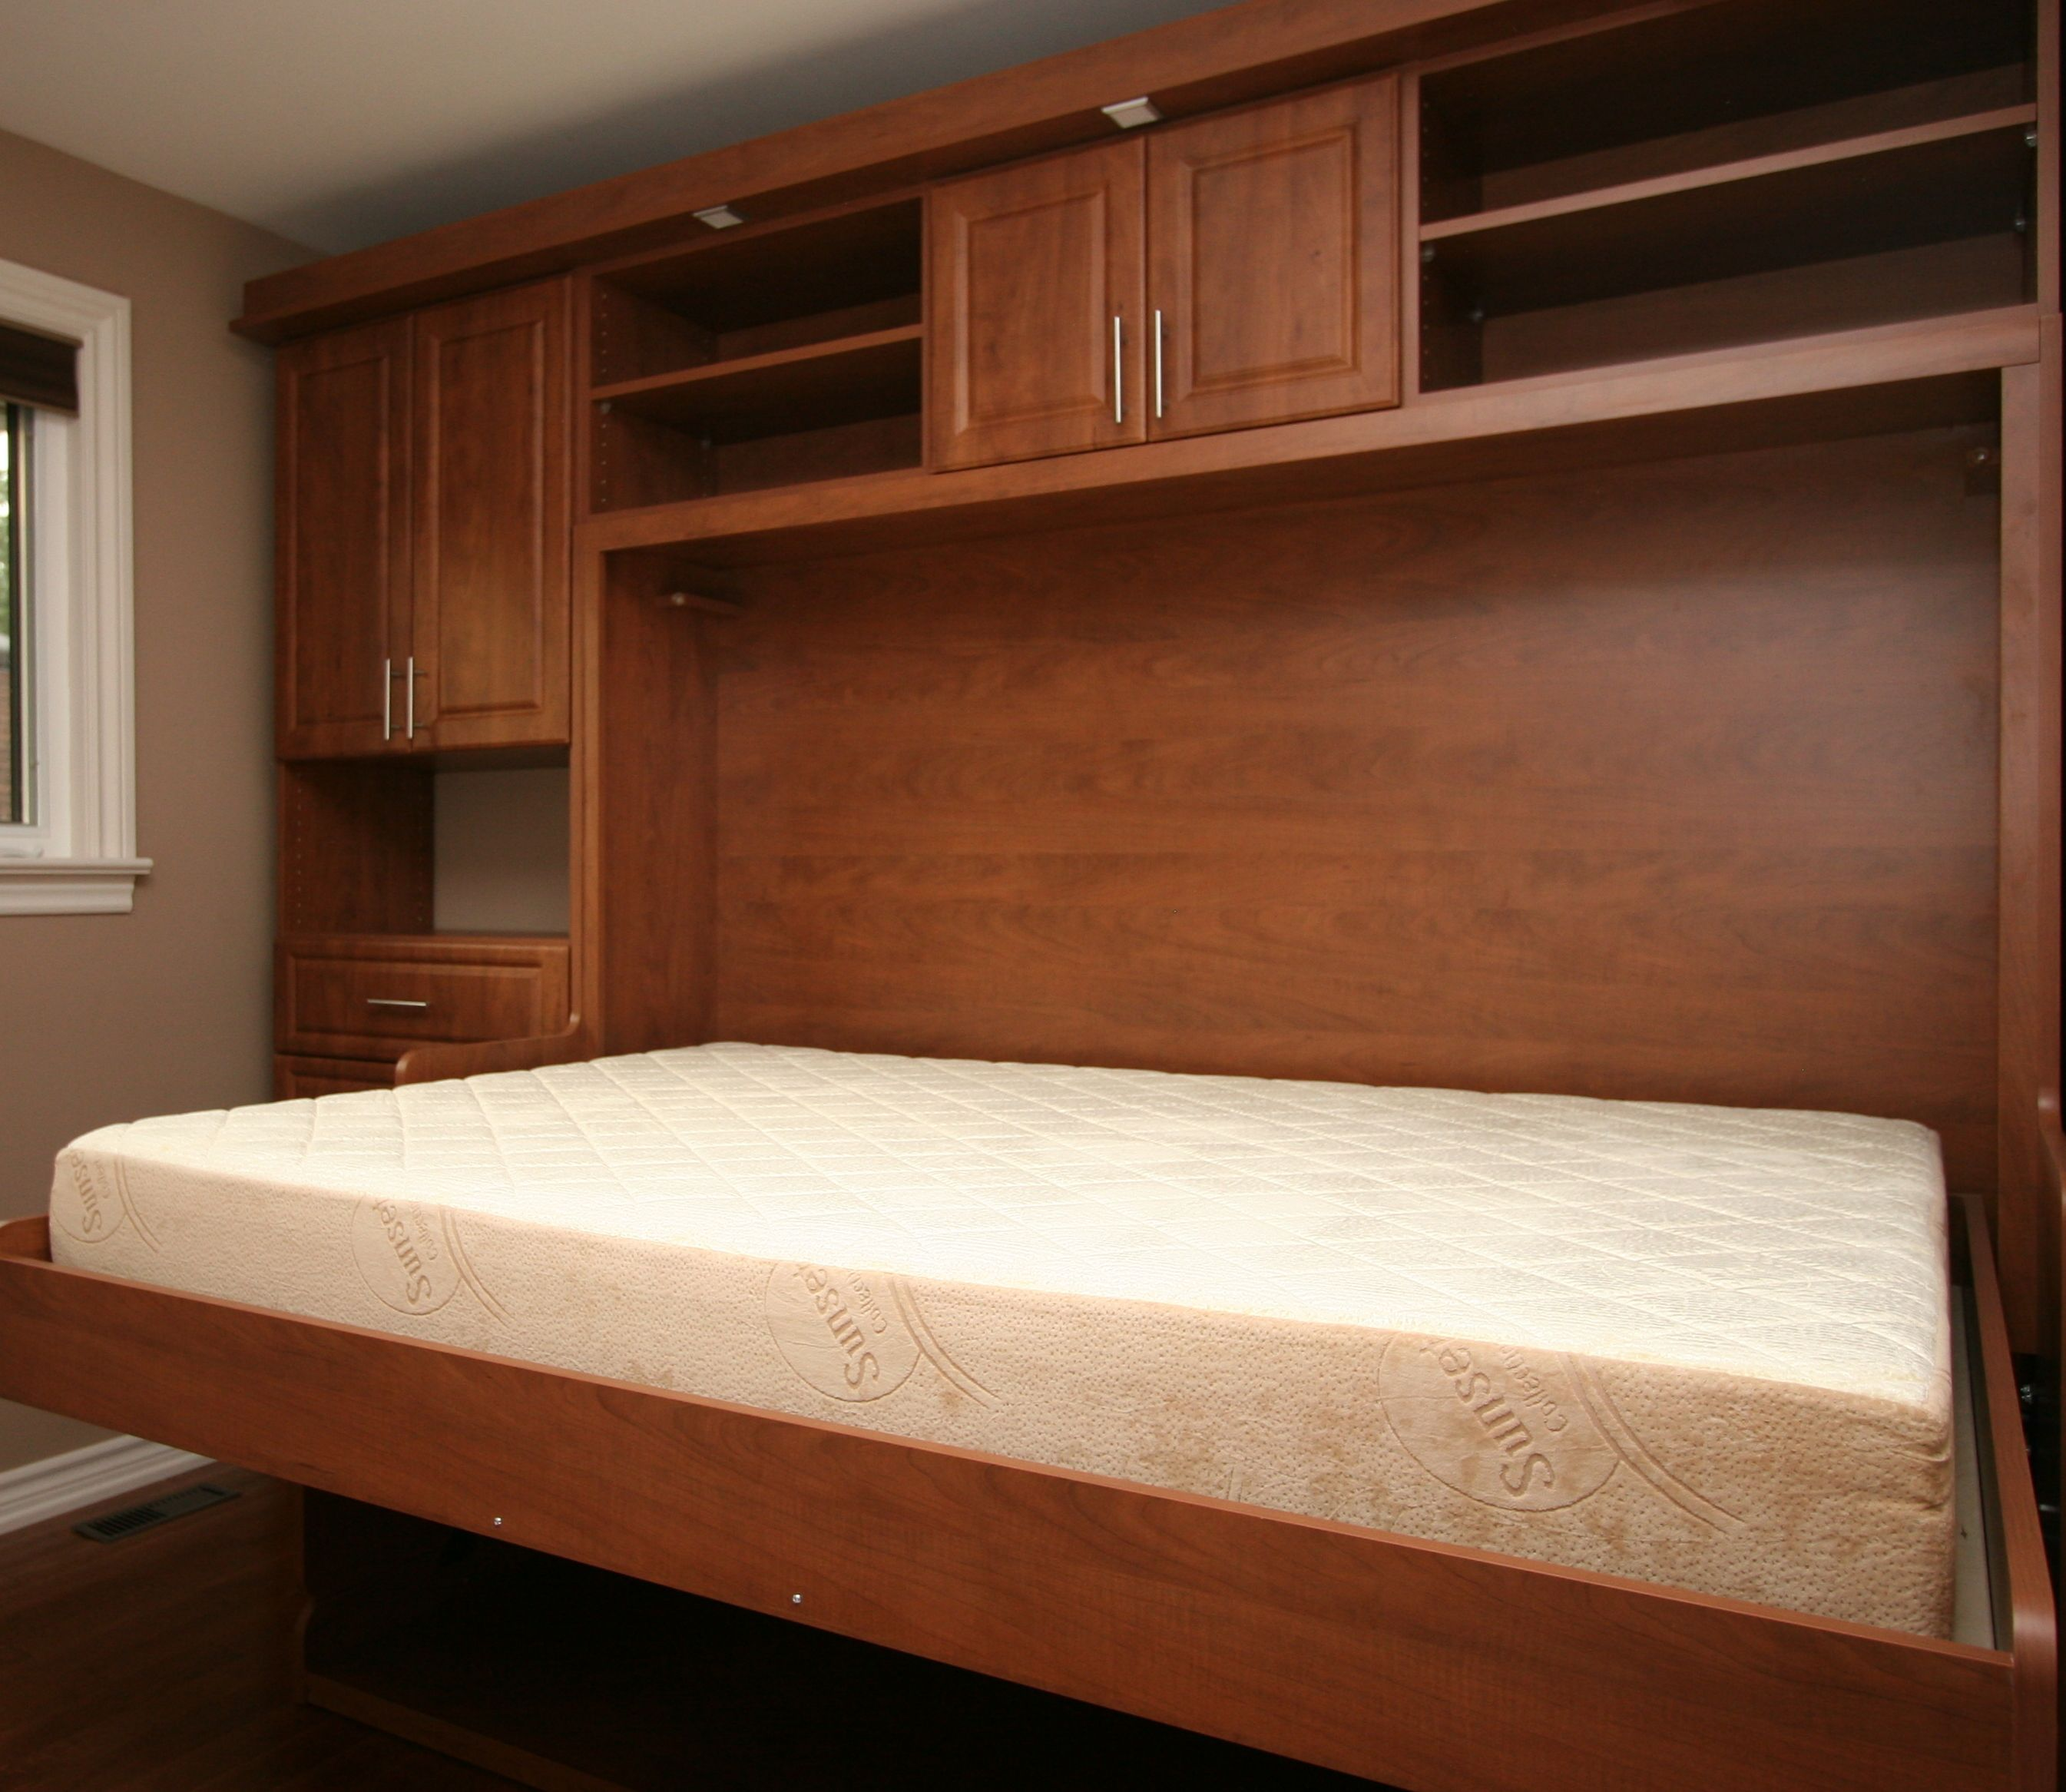 Built In Cabinet Designs Bedroom Deskdayopens Into Bed At Night And Everything Can Stay On